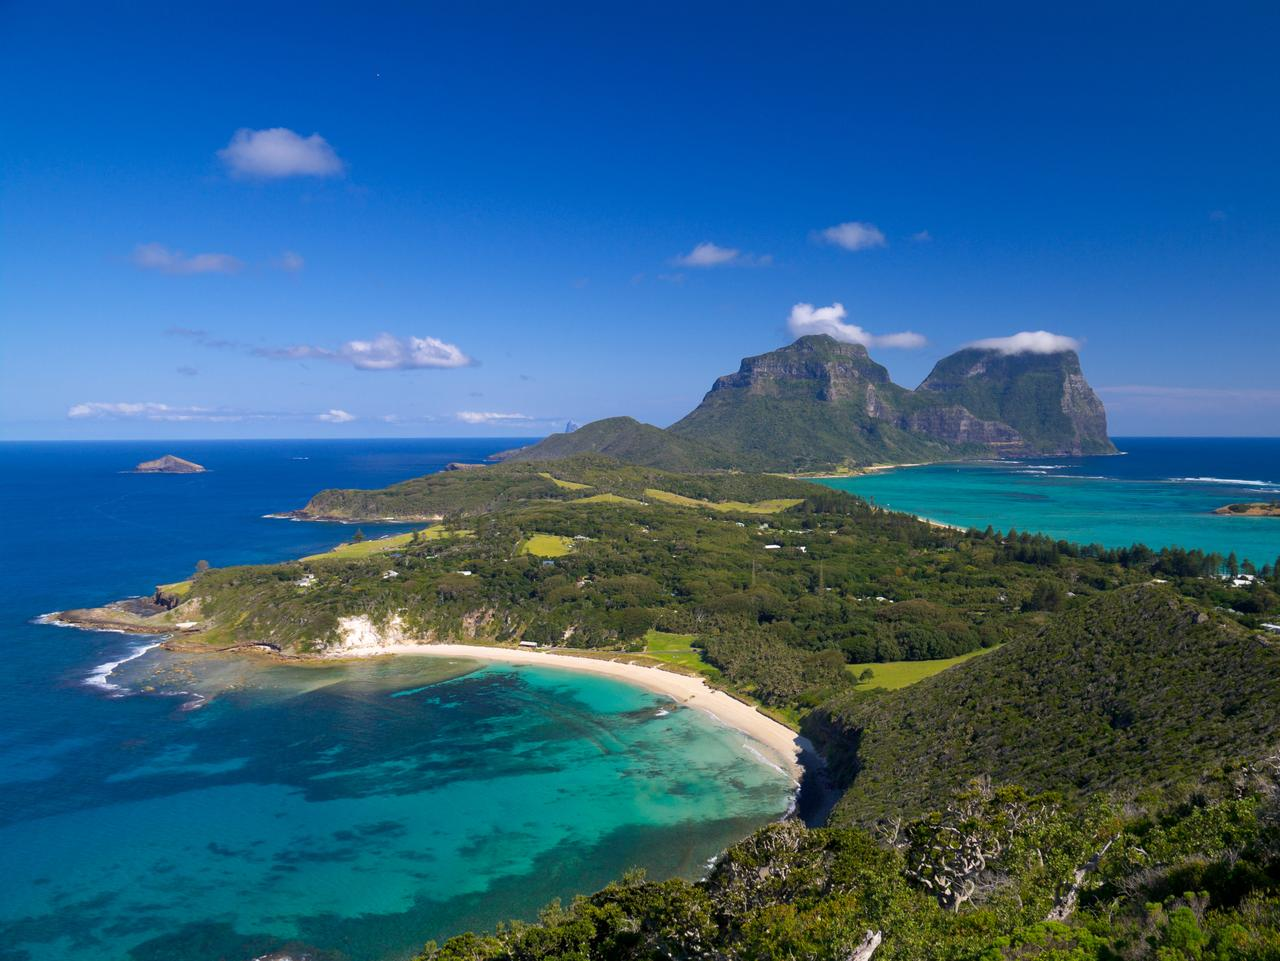 View south over the stunningly beautiful Lord Howe Island from Malabar lookout. Lagoons on both sides of the island are visible, as well as the peaks of Mts Lidgbird and Gower at the far end of the island. The sky and ocean are brilliant blue.